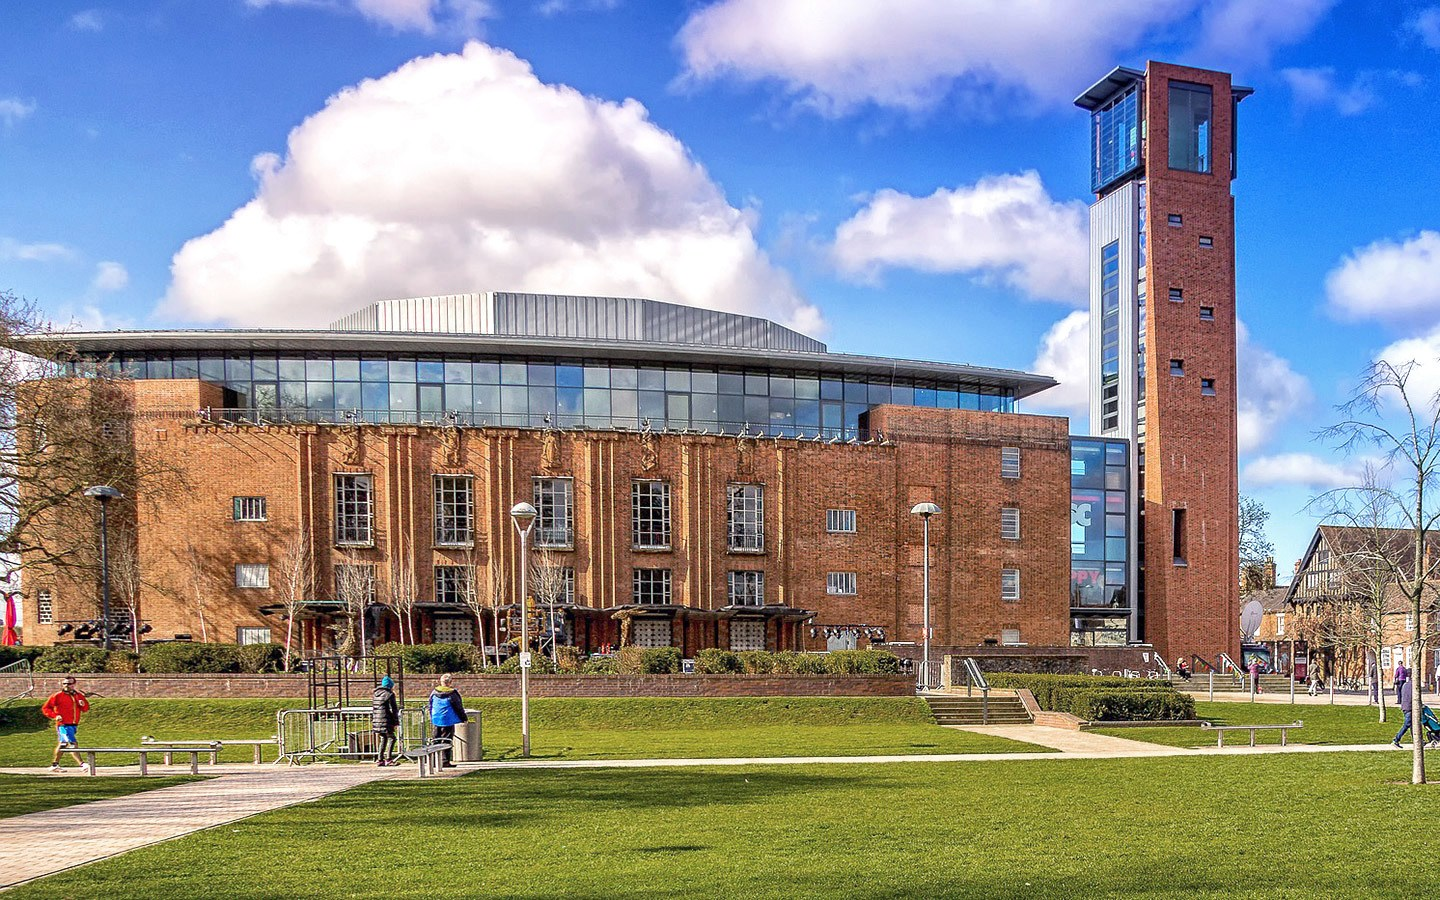 The Royal Shakespeare Company theatre in Stratford-upon-Avon, England